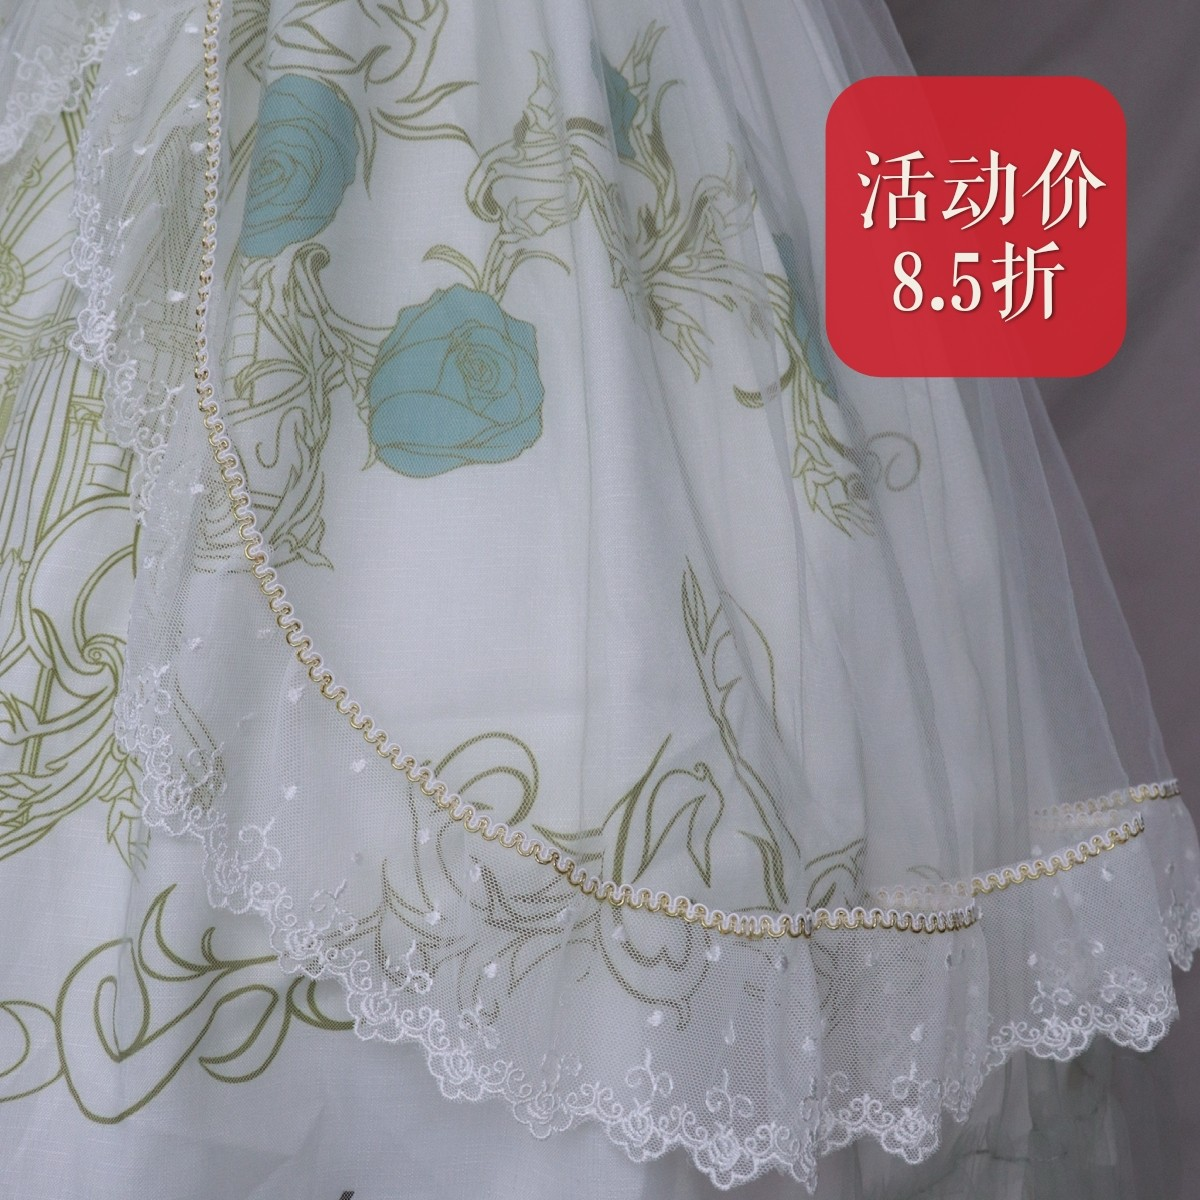 From stock to all kinds of lace and gold edge gauze, Lolita original court gauze